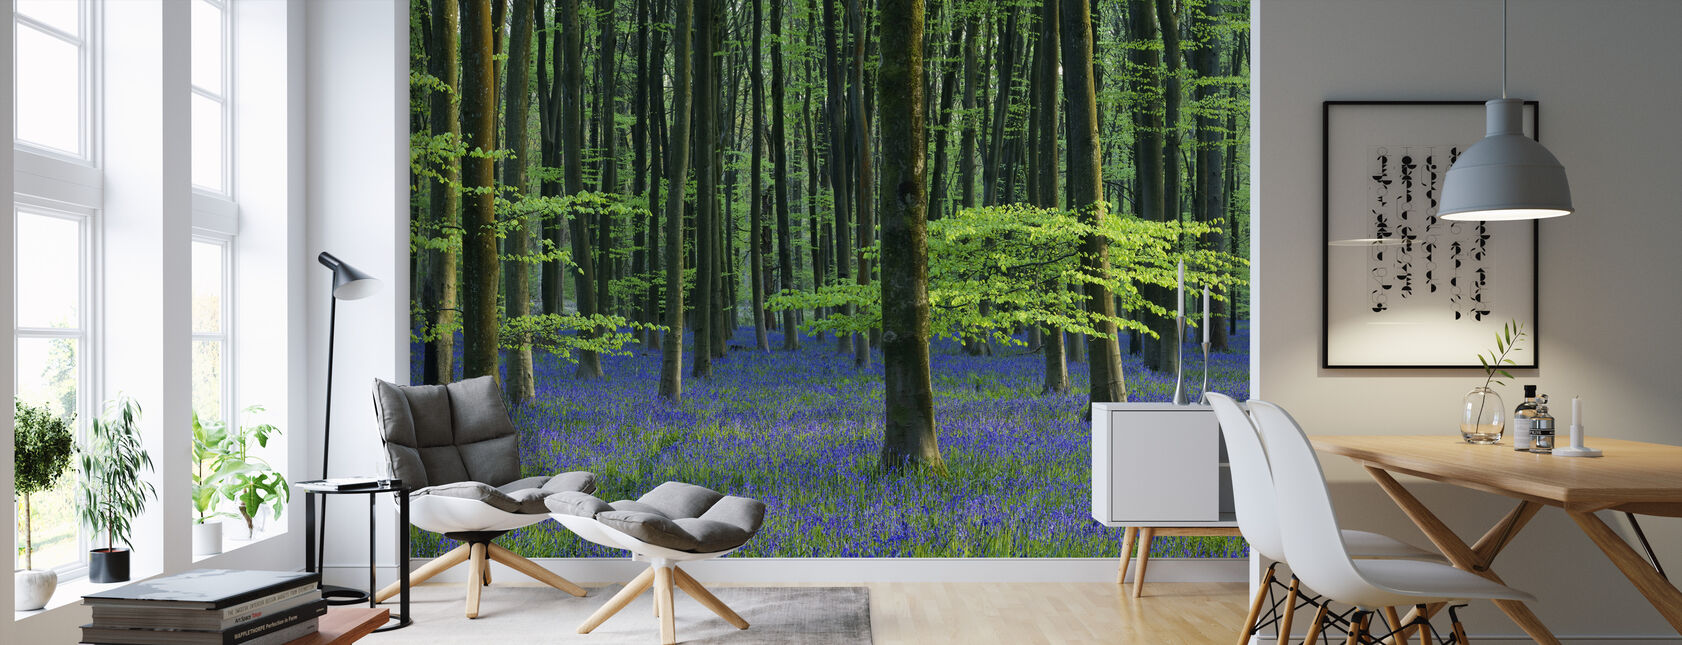 Beautiful Bluebells - Wallpaper - Living Room